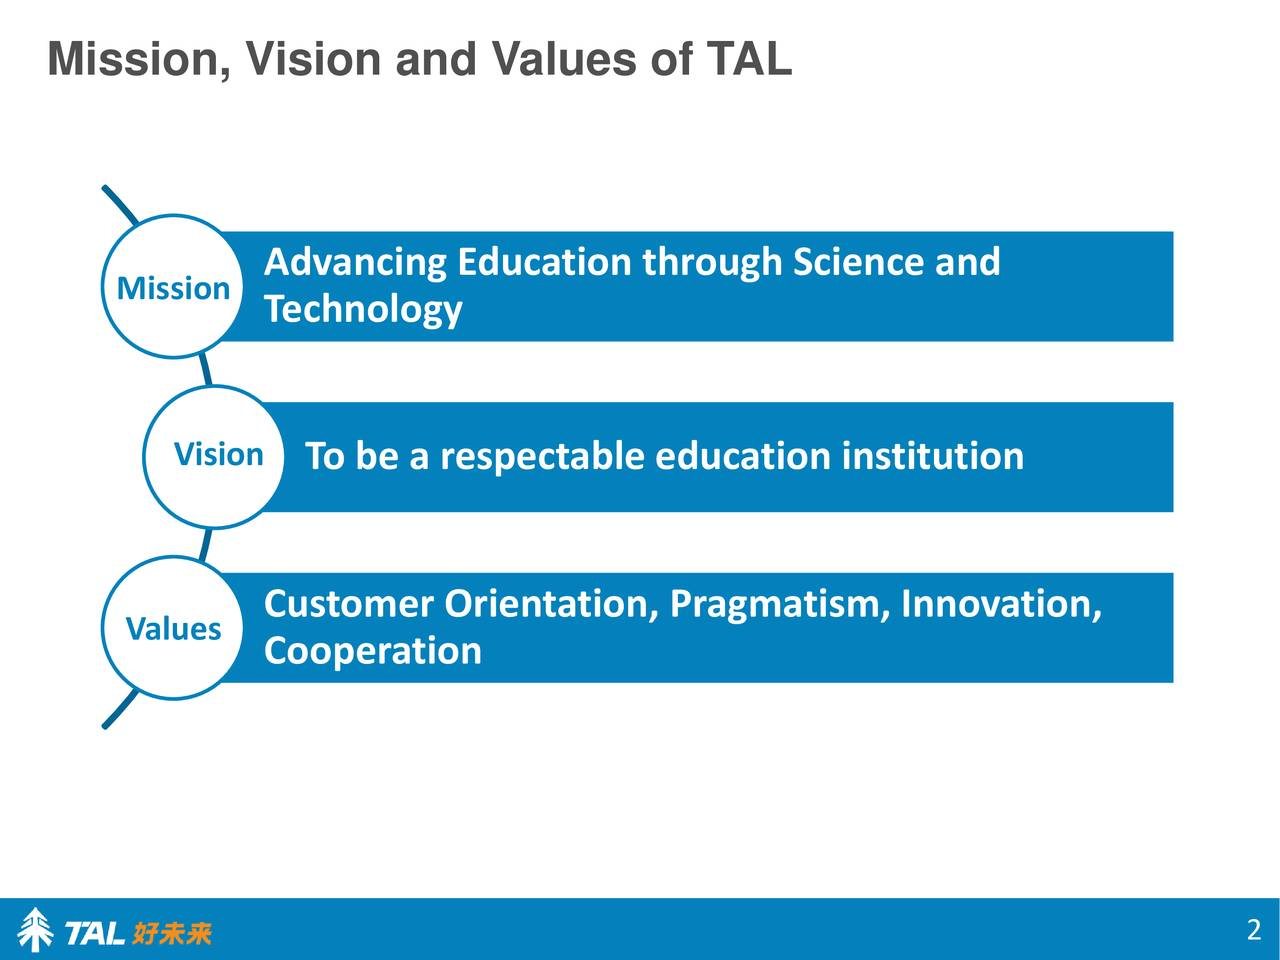 Mission Advancing Education through Science and Technology Vision To be a respectable education institution Customer Orientation, Pragmatism, Innovation, Values Cooperation 2